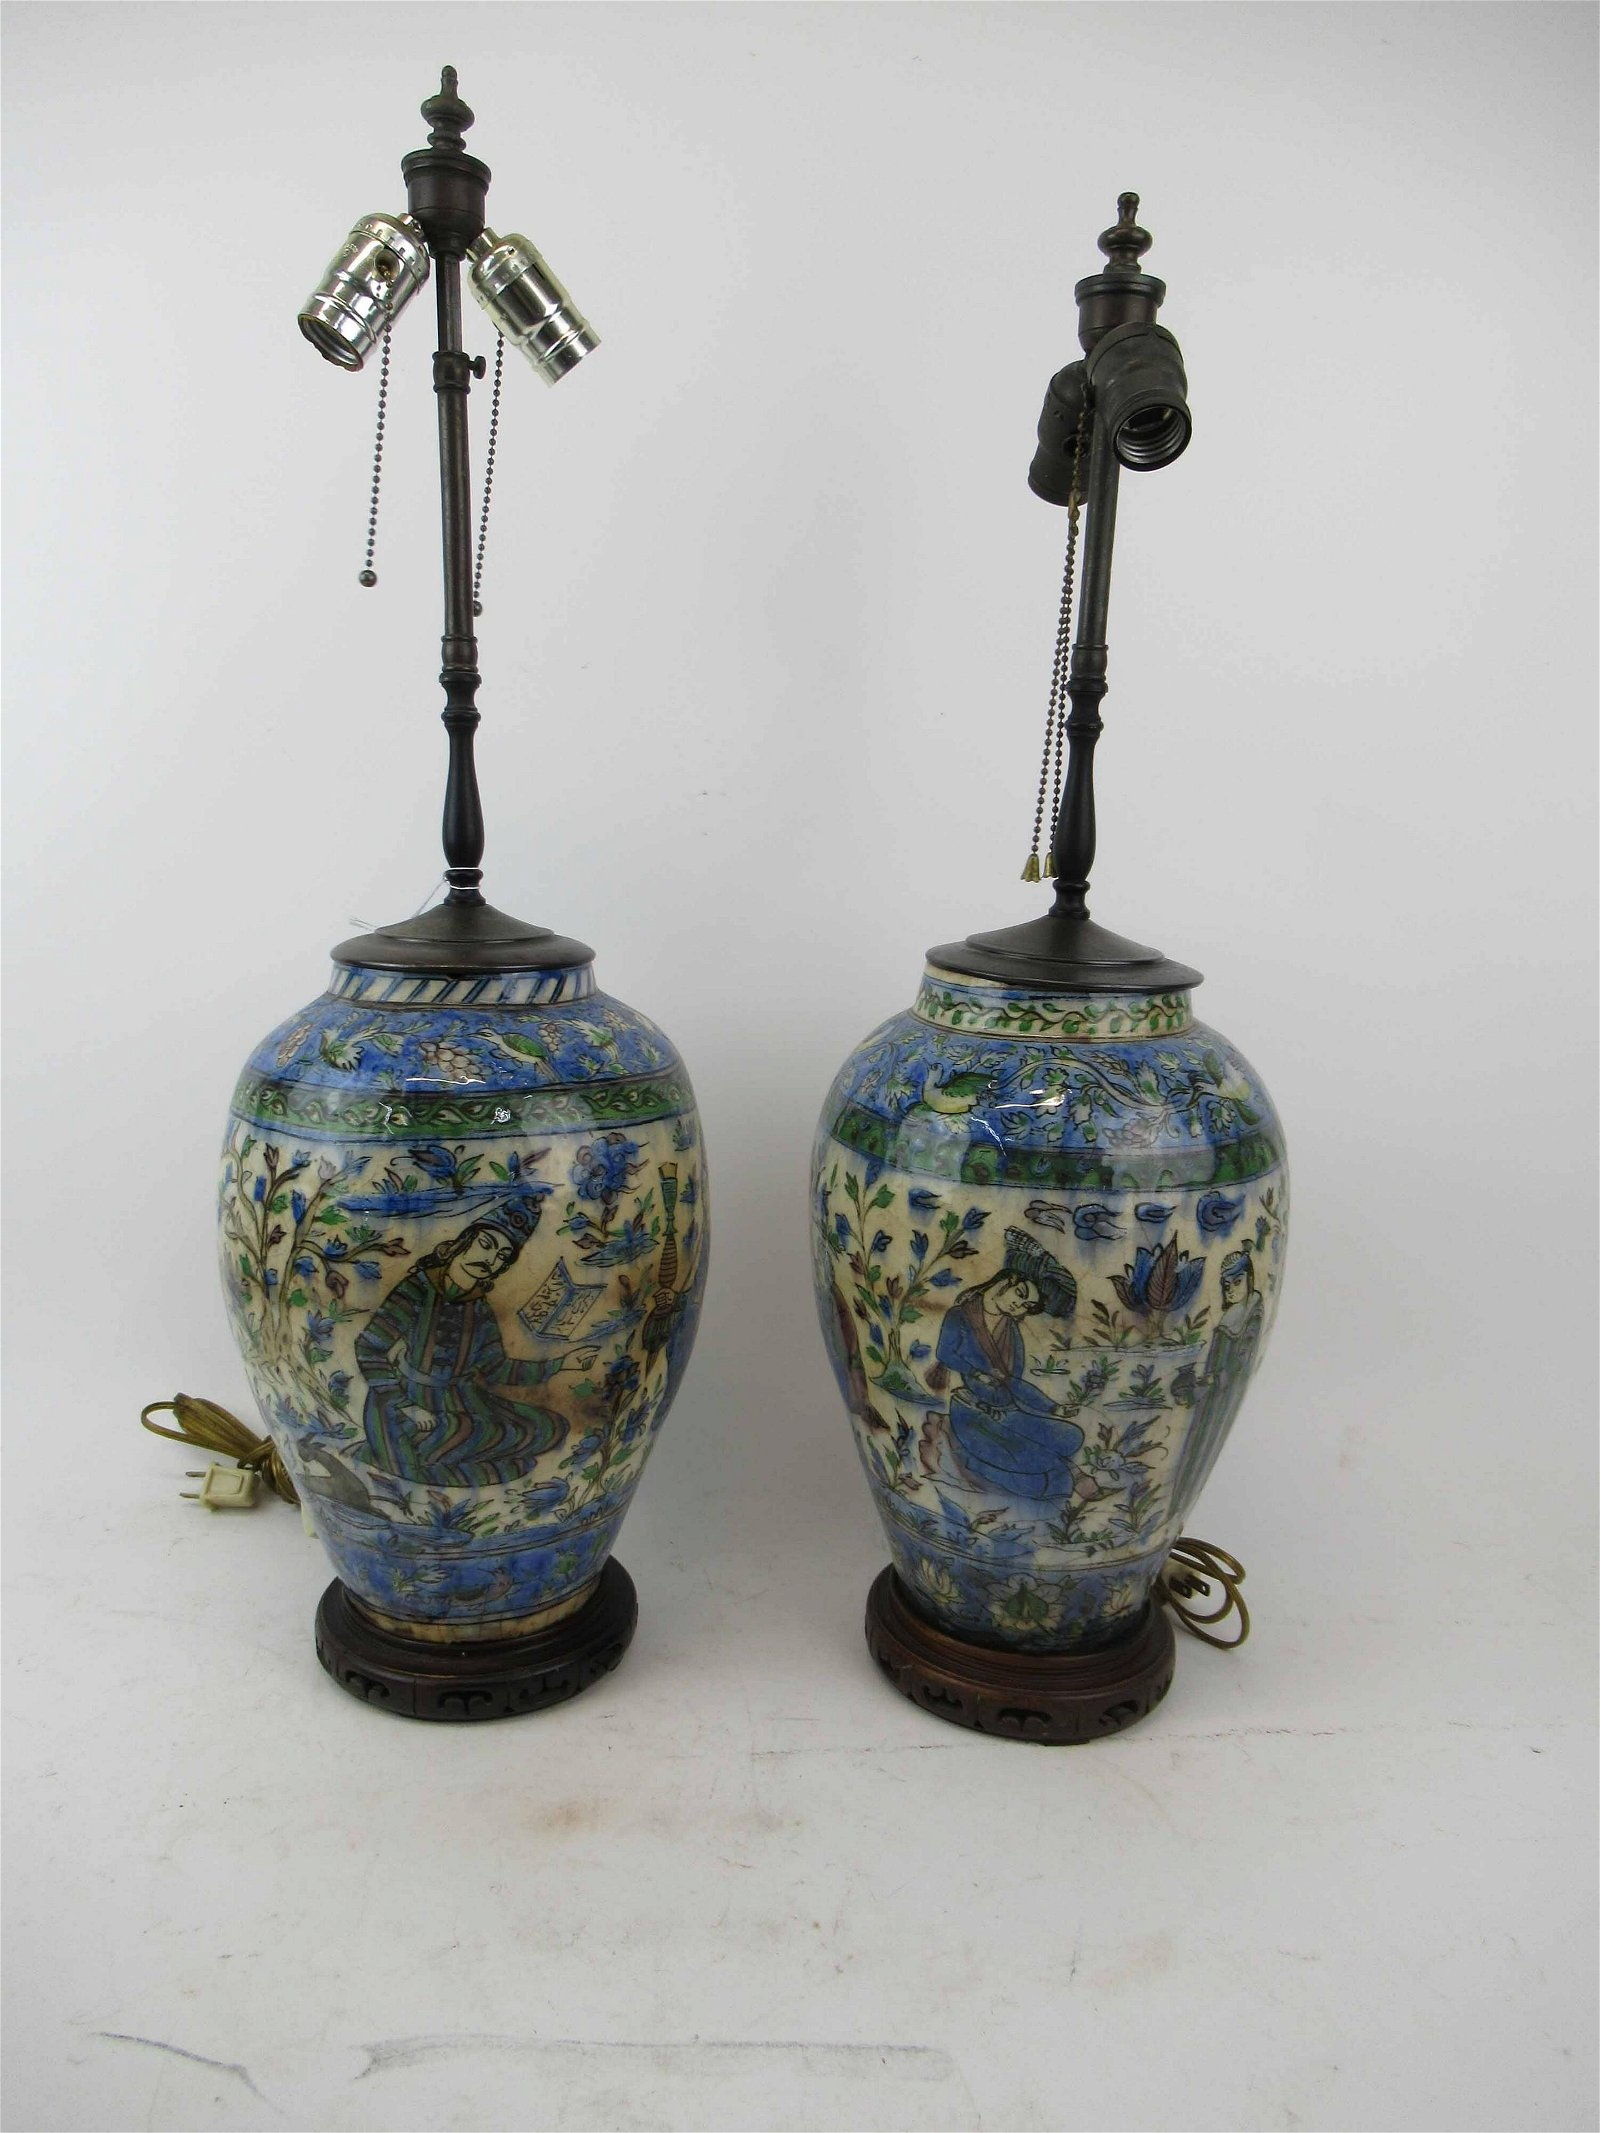 Pair of Persian Decorated Polychrome Vases